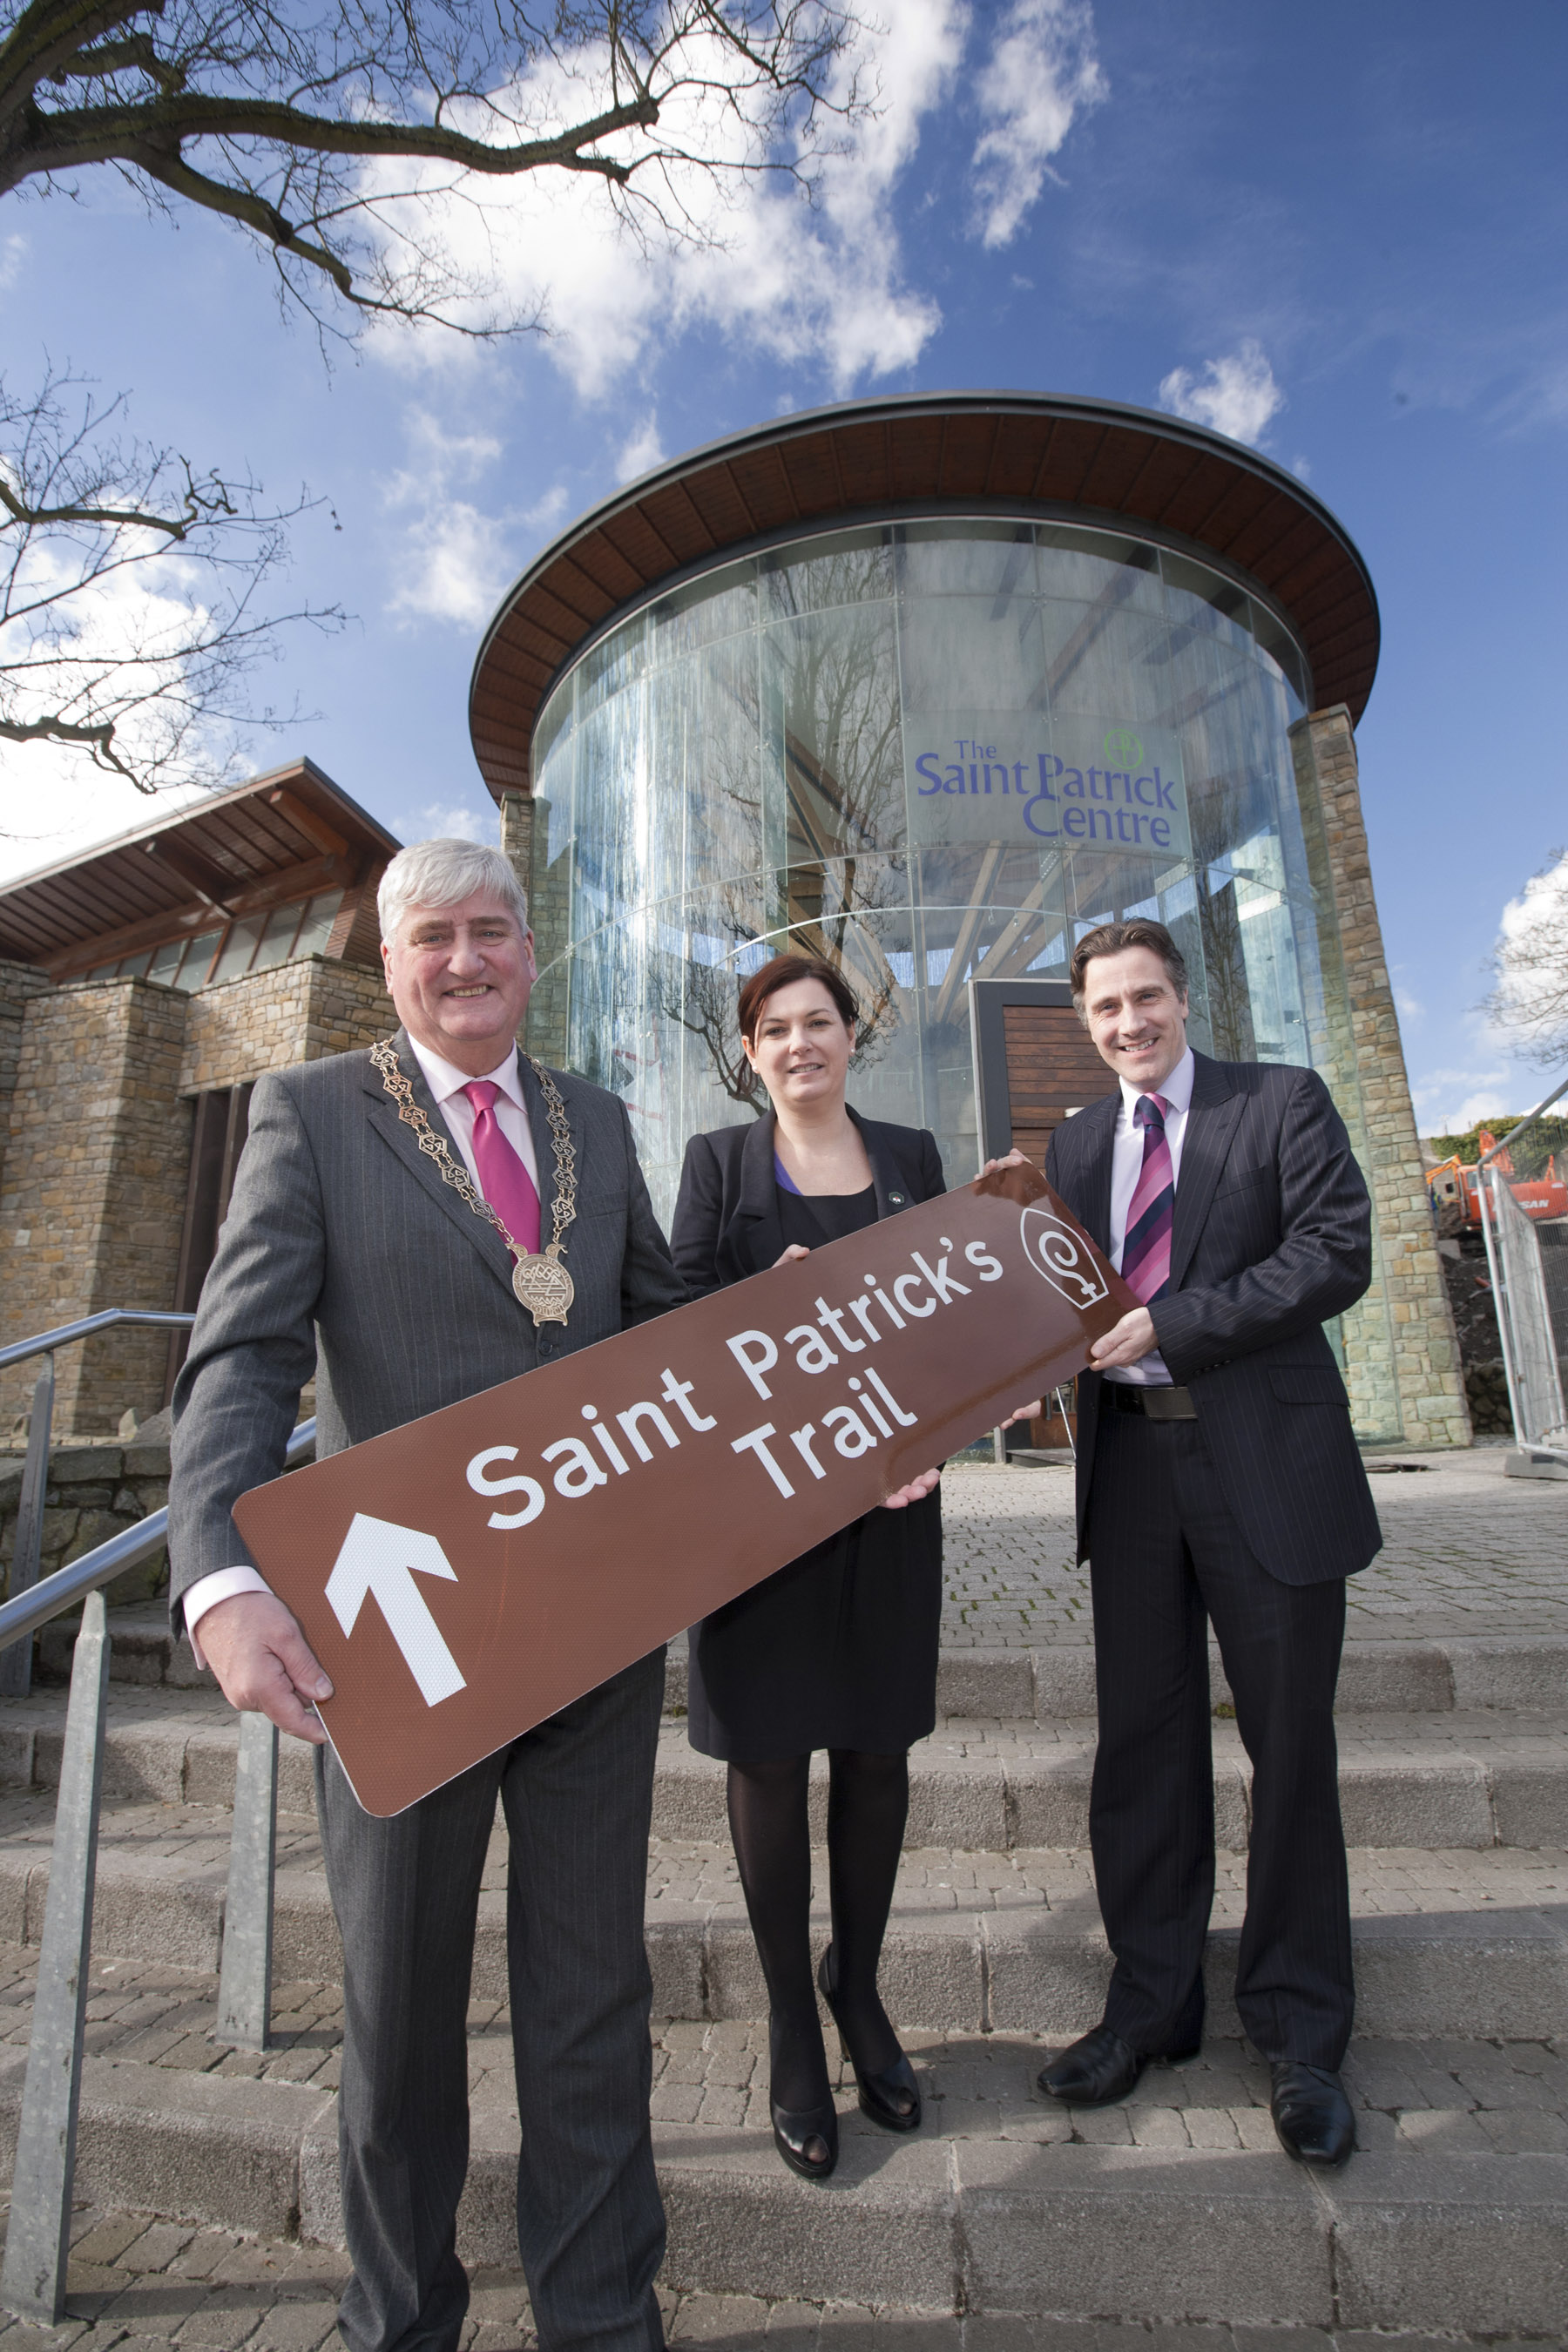 Attending the launch of the Saint Patrick's Trail at the Saint Patrick Centre in Dowpatrick, Chairman of Down District Council, Councillor Eamonn O'Neill, NITB Director of Product Development, Siobhan McCauley and Dr Tim Campbell, Director of the Saint Patrick Centre.